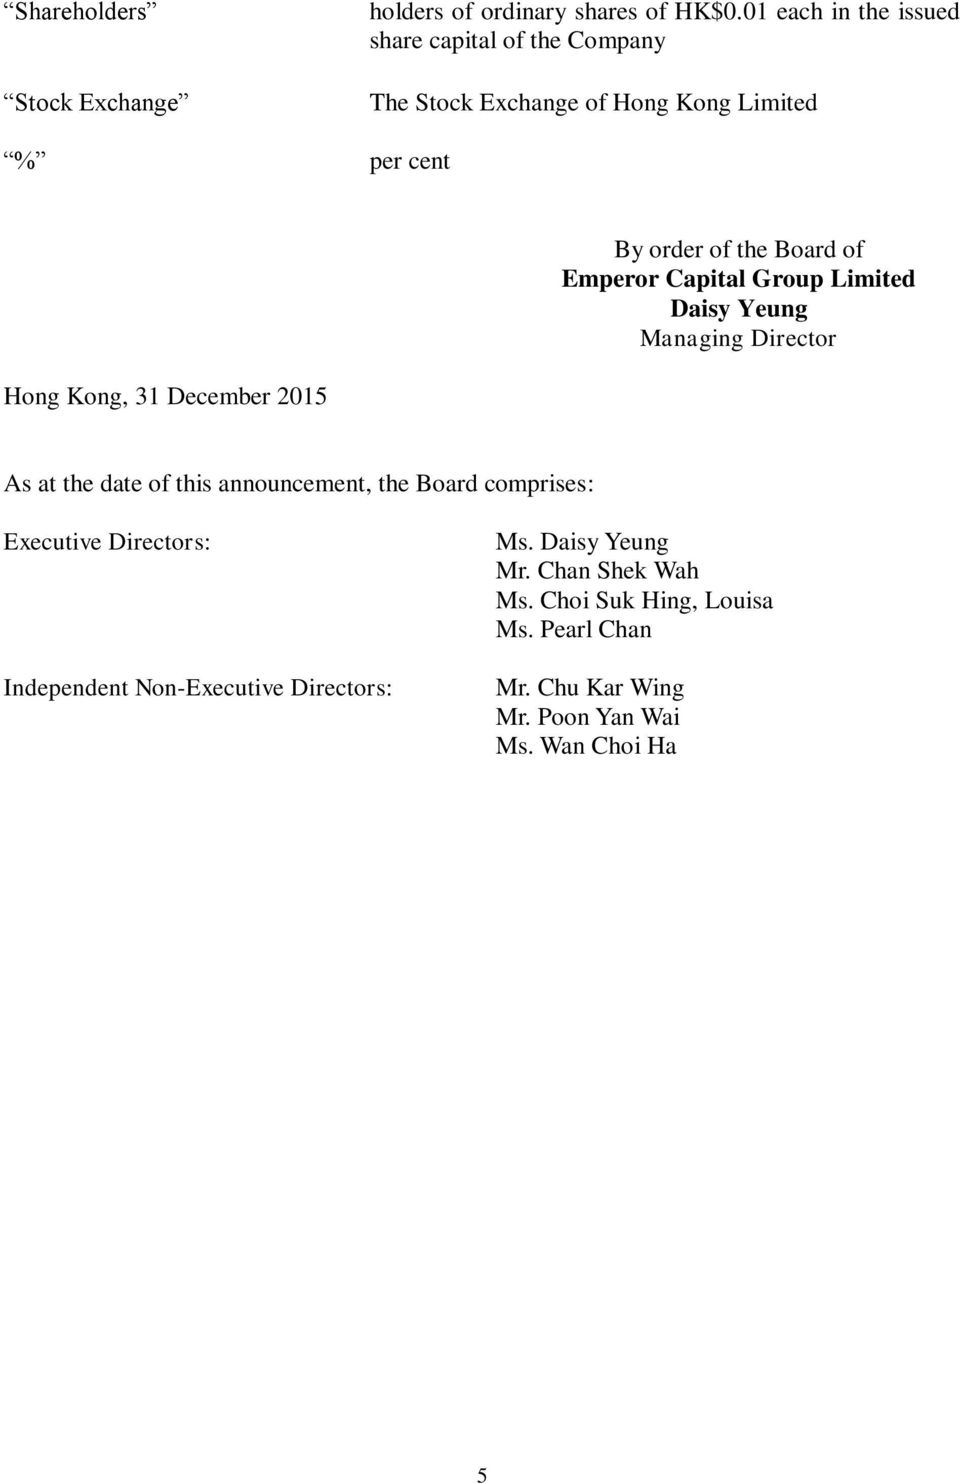 Emperor Capital Group Limited Daisy Yeung Managing Director Hong Kong, 31 December 2015 As at the date of this announcement, the